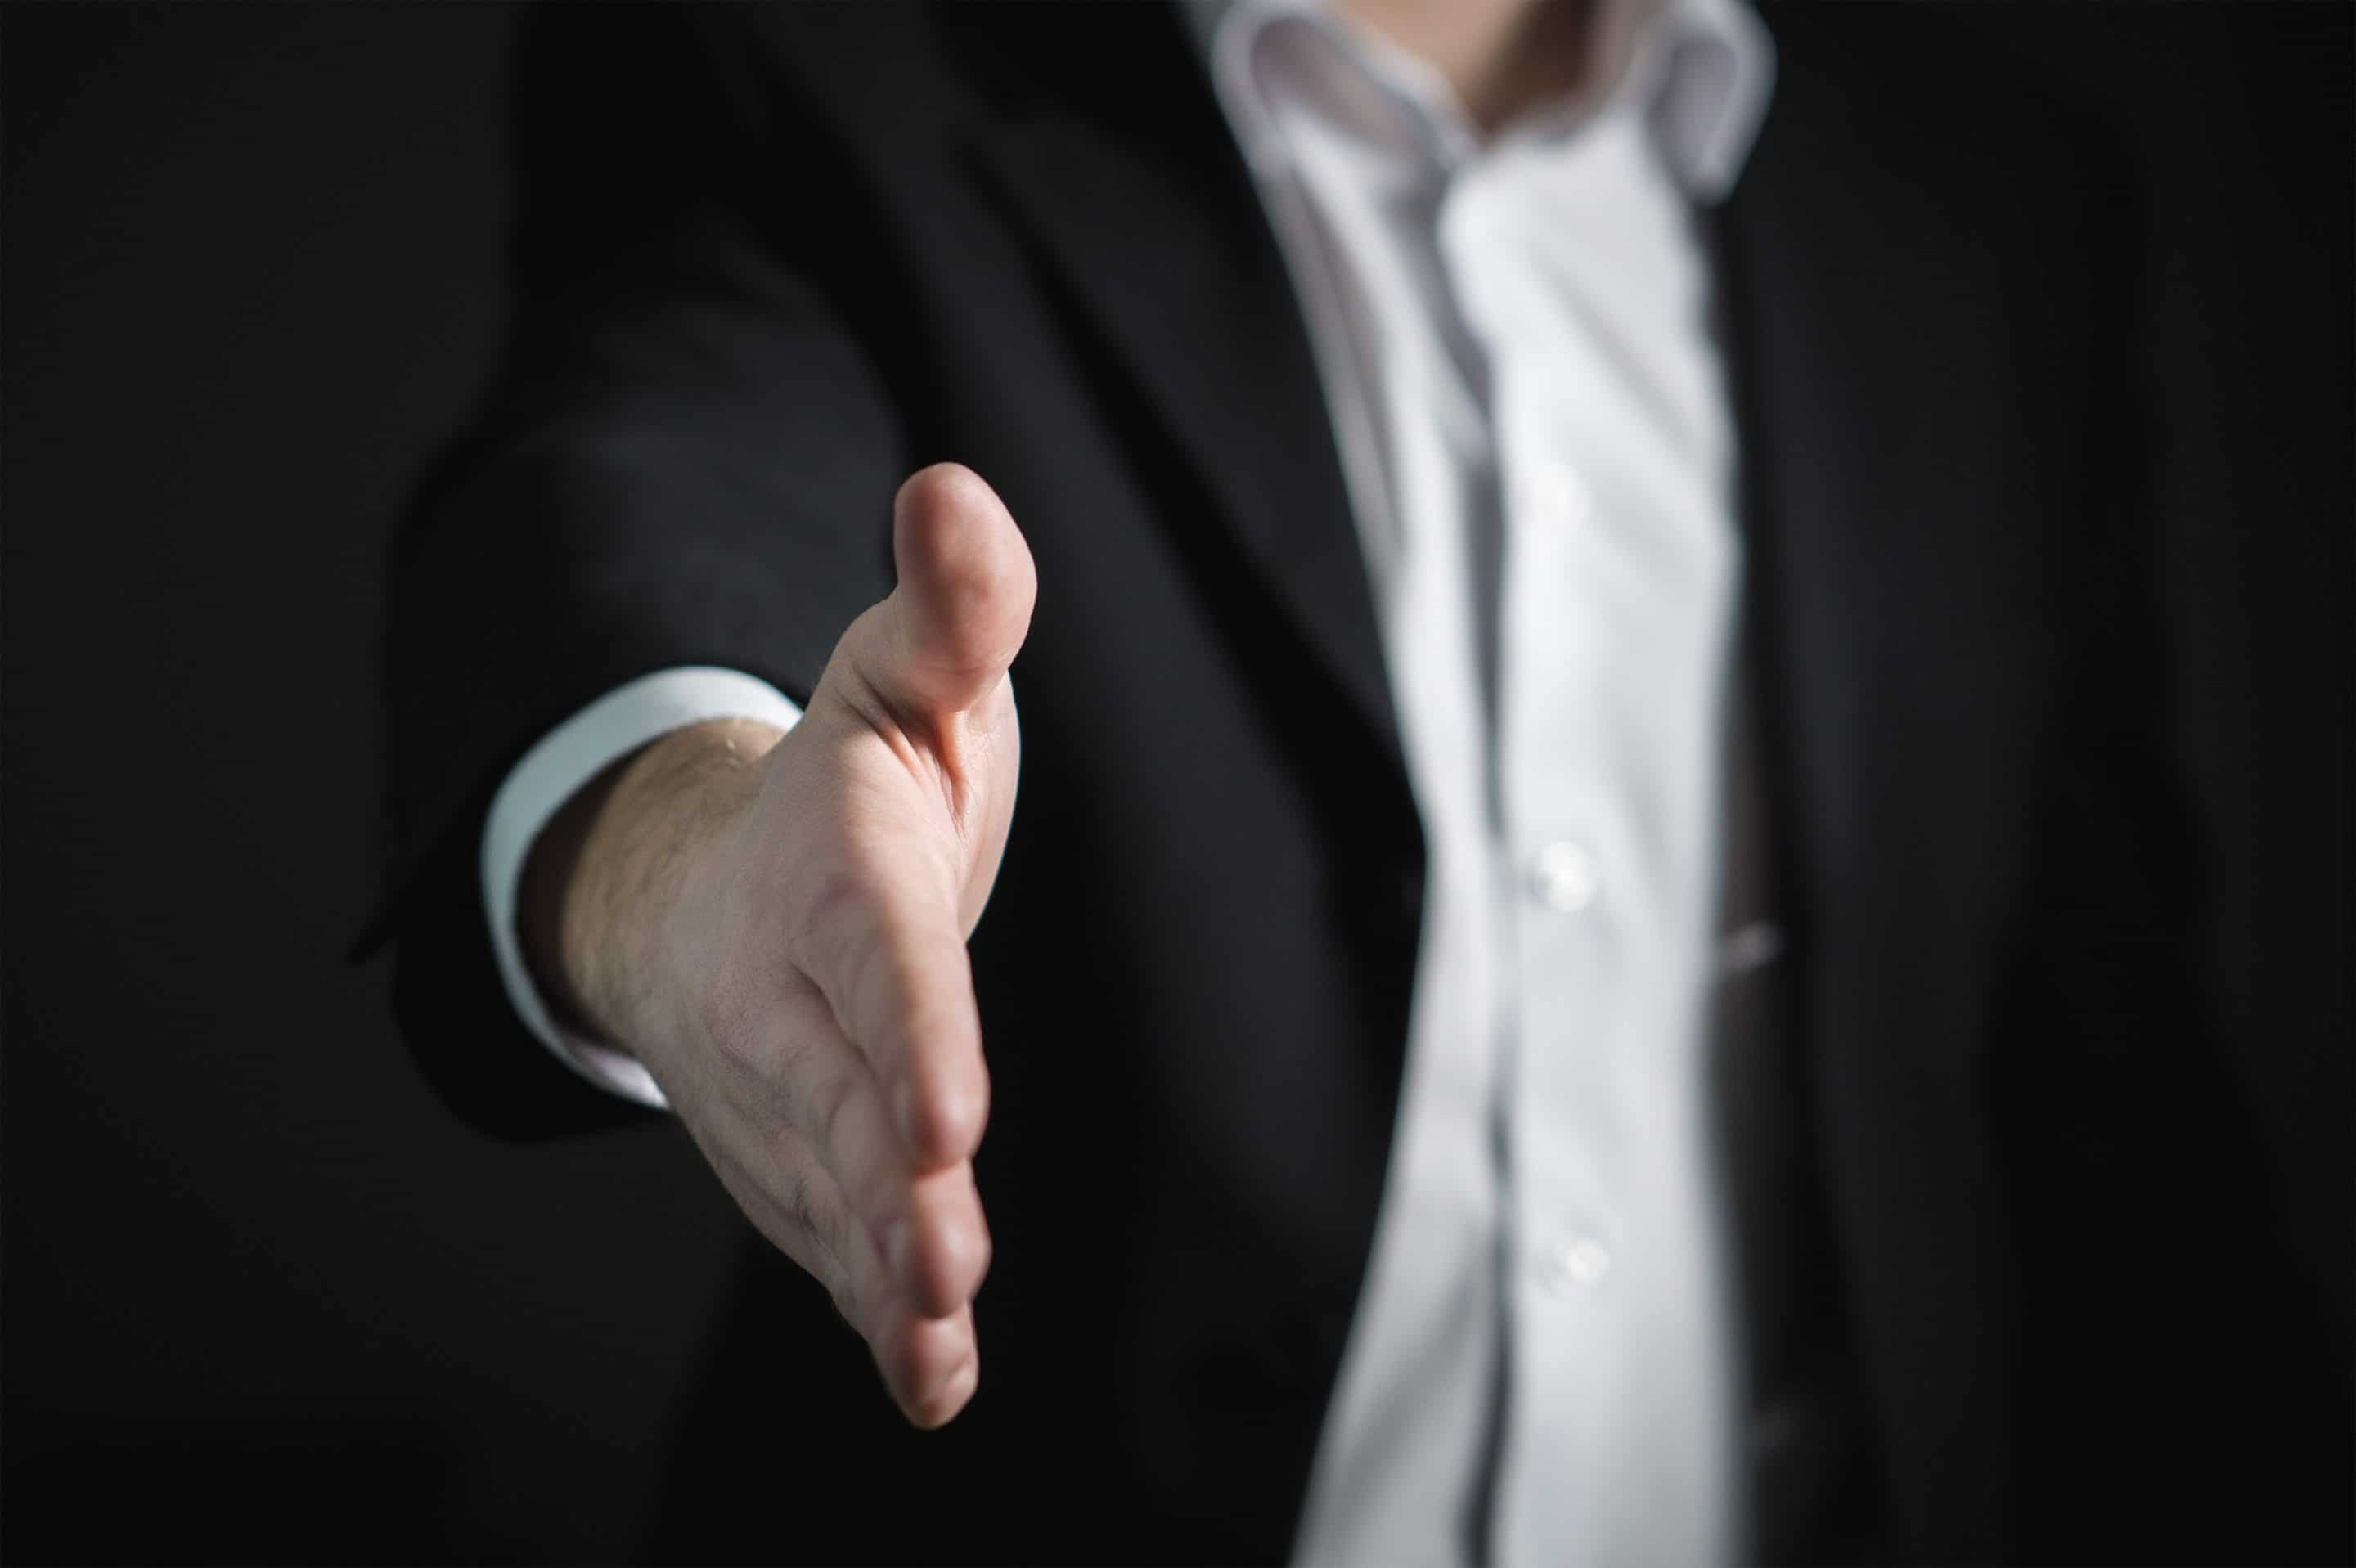 Man in suit with outreached hand for a handshake